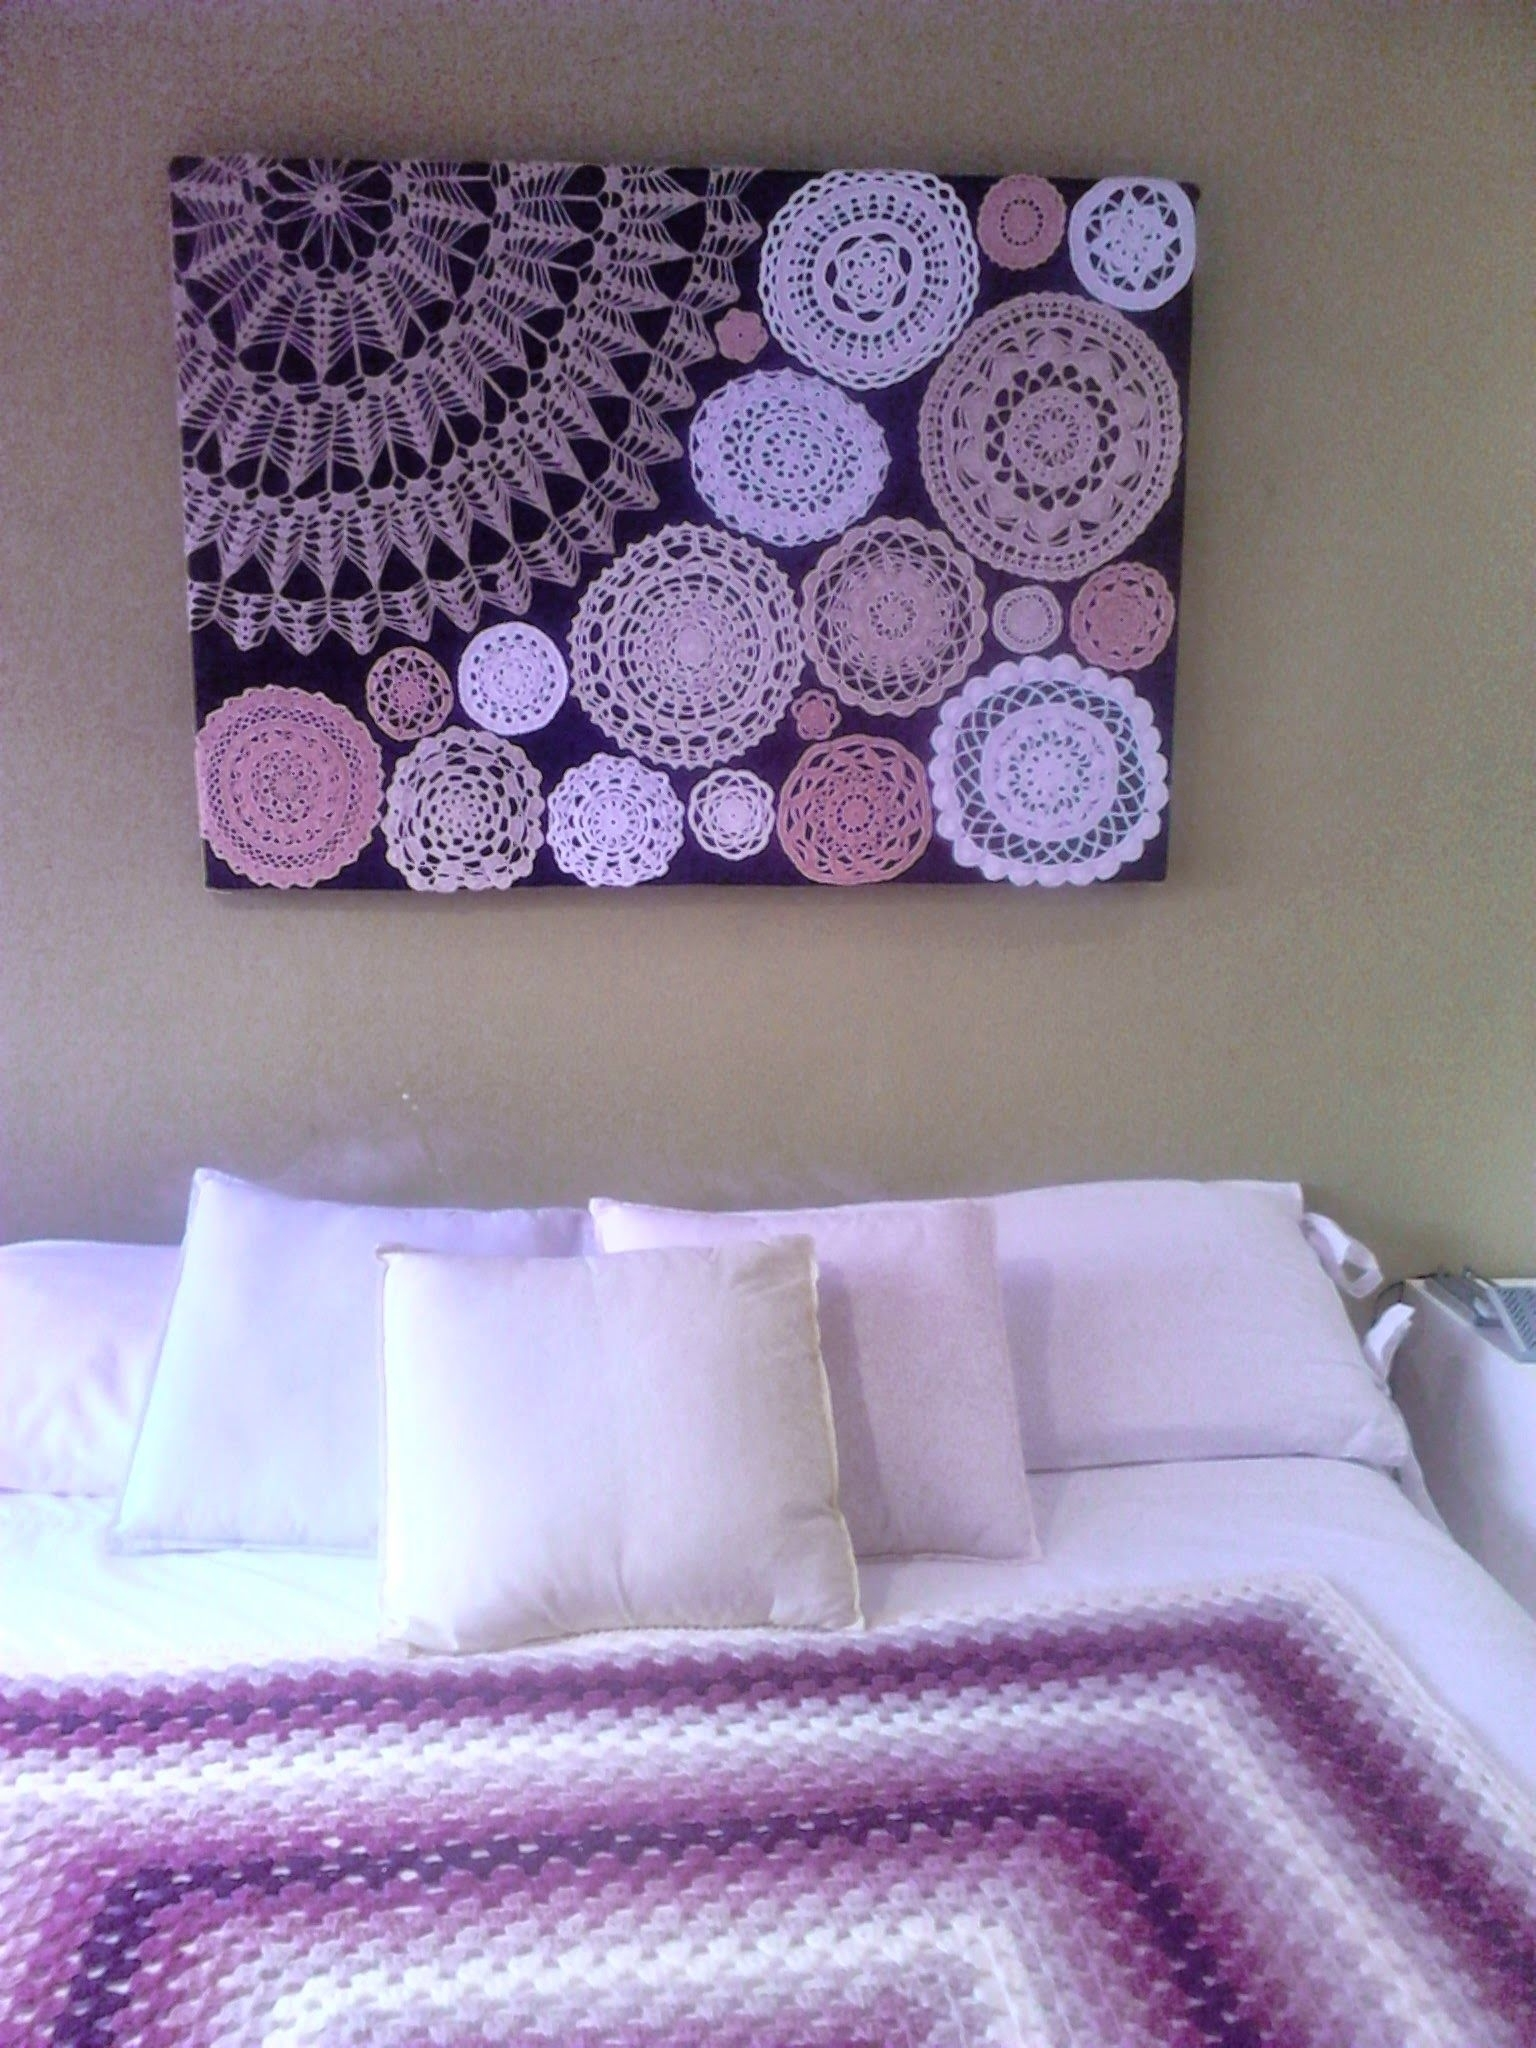 A Quick Sharesies! | Ball Workouts | Pinterest | Crochet Doilies regarding Crochet Wall Art (Image 2 of 20)